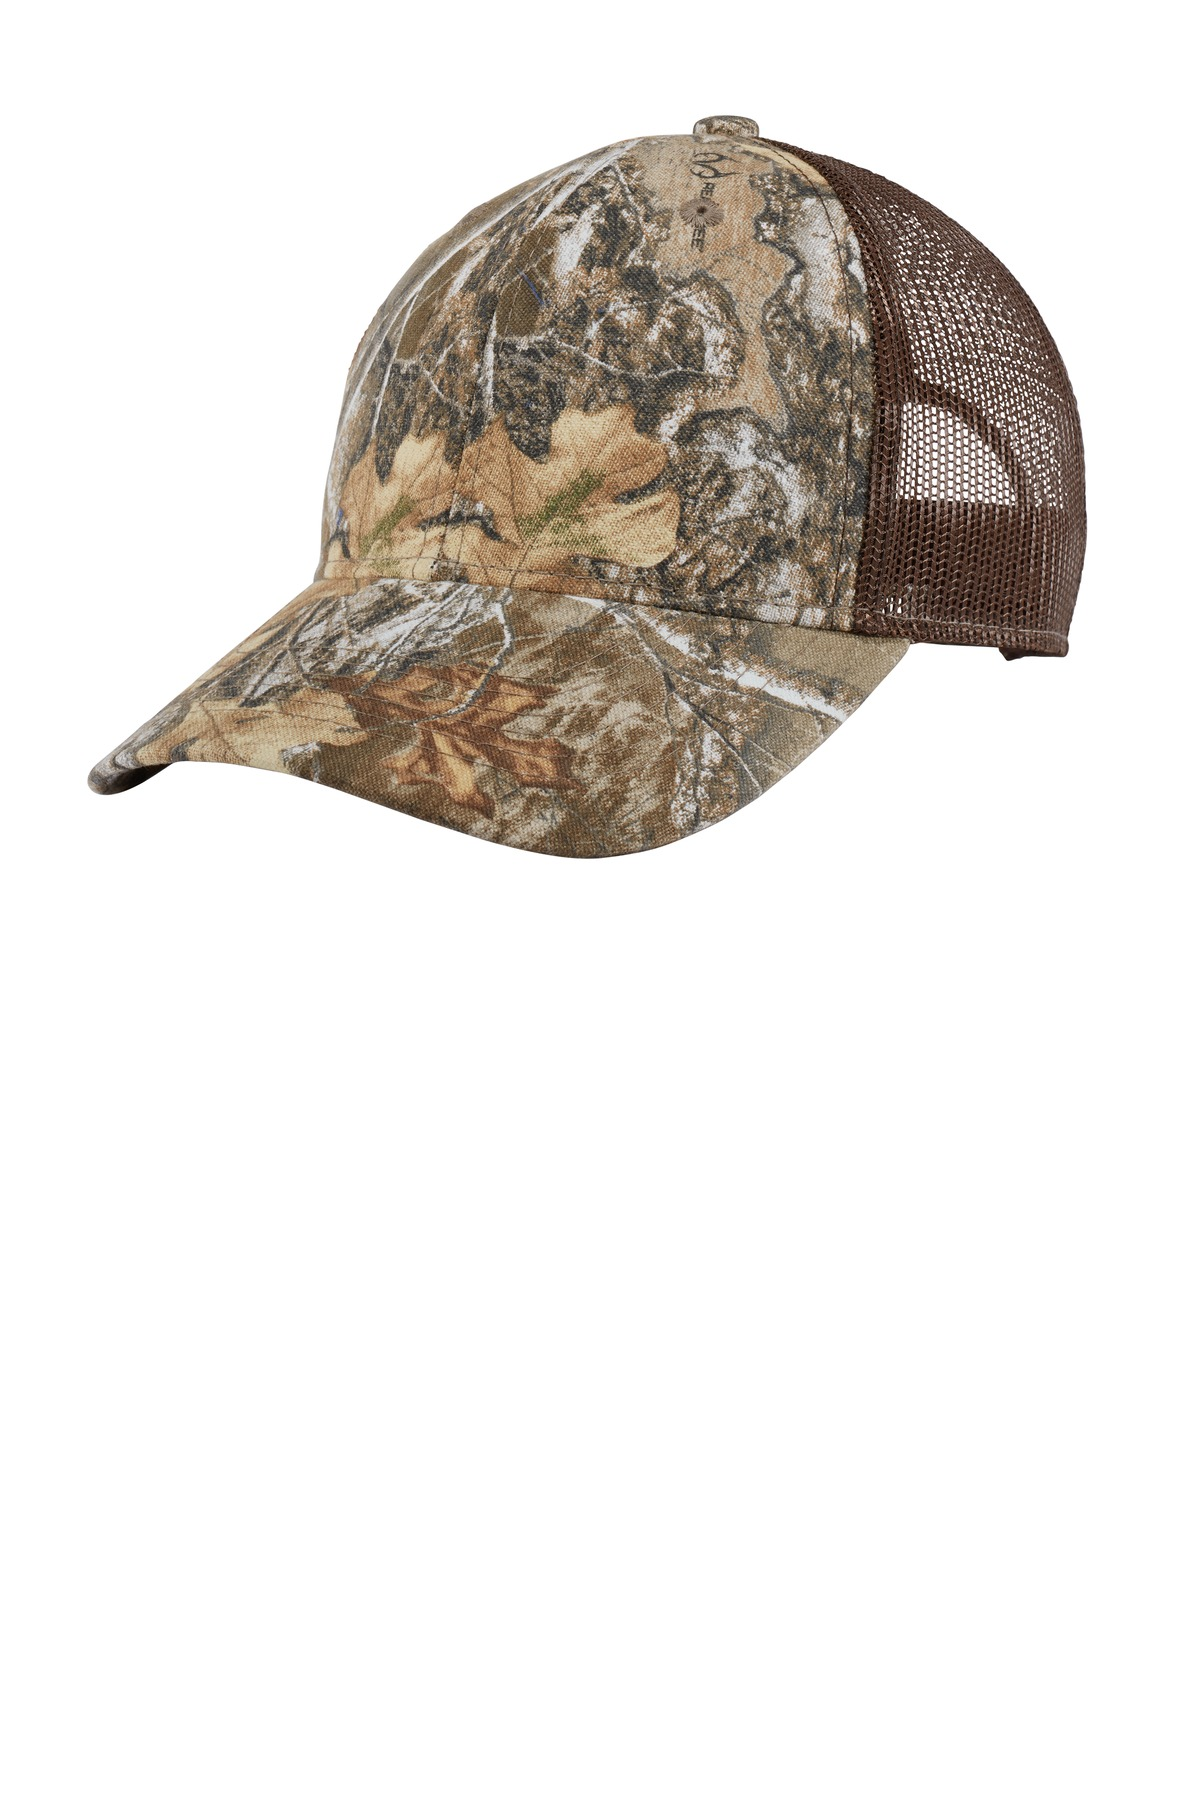 Port Authority ®  Structured Camouflage Mesh Back Cap. C930 - Realtree Edge